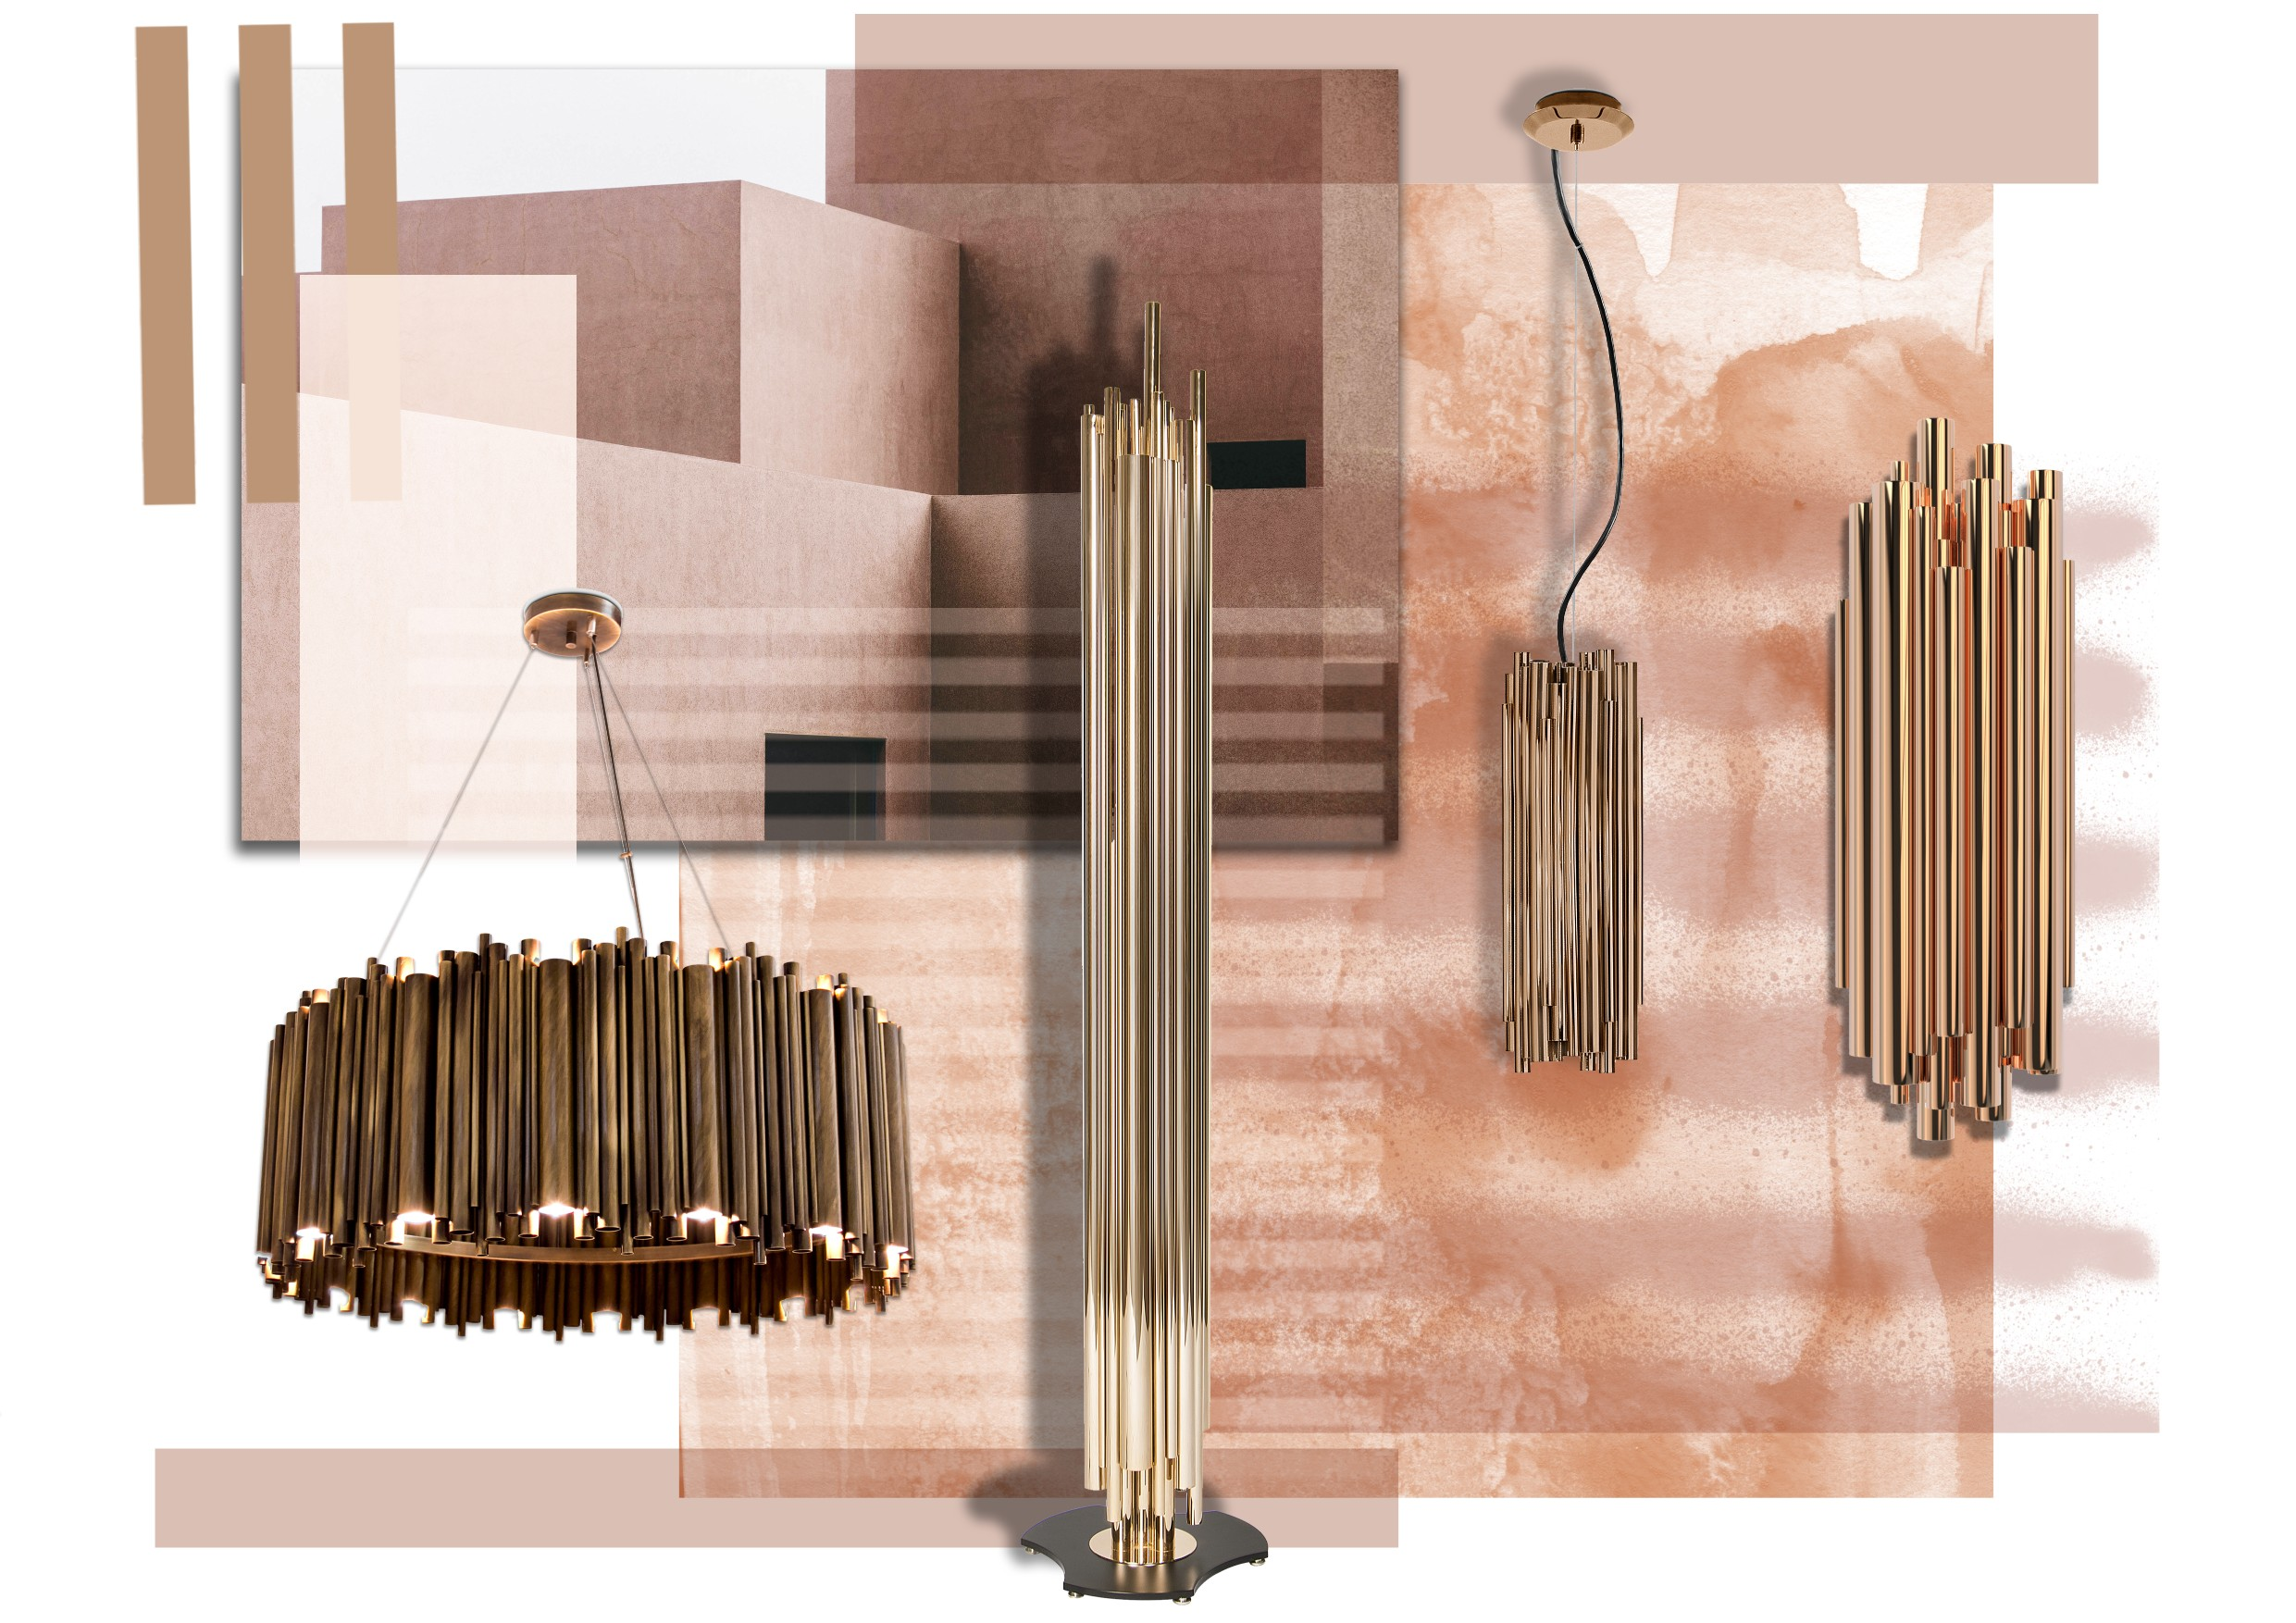 Summertime Mood Boards  Summertime mood boards Feel Inspired By These Summertime Mood Boards and Floor Lamps! Feel Inspired By These Mood Board and Floor Lamps 1